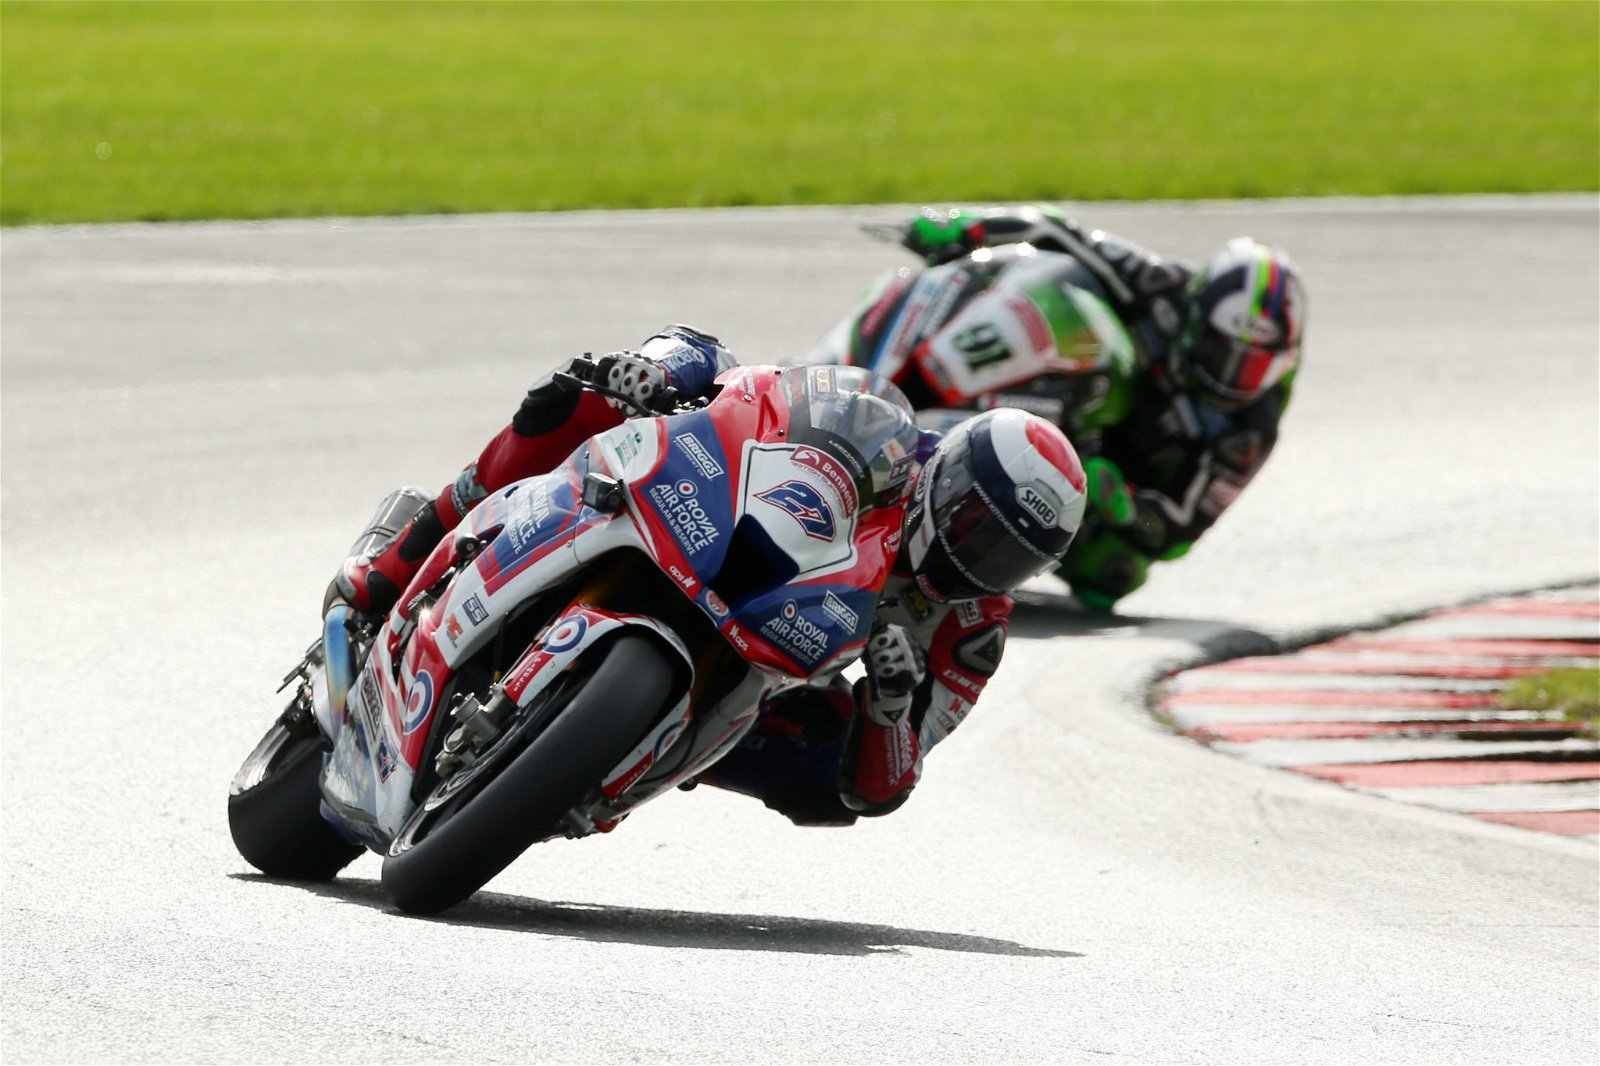 Haslam and Dixon are the frontrunners credit Tim Keeton (Impact Images Photography)